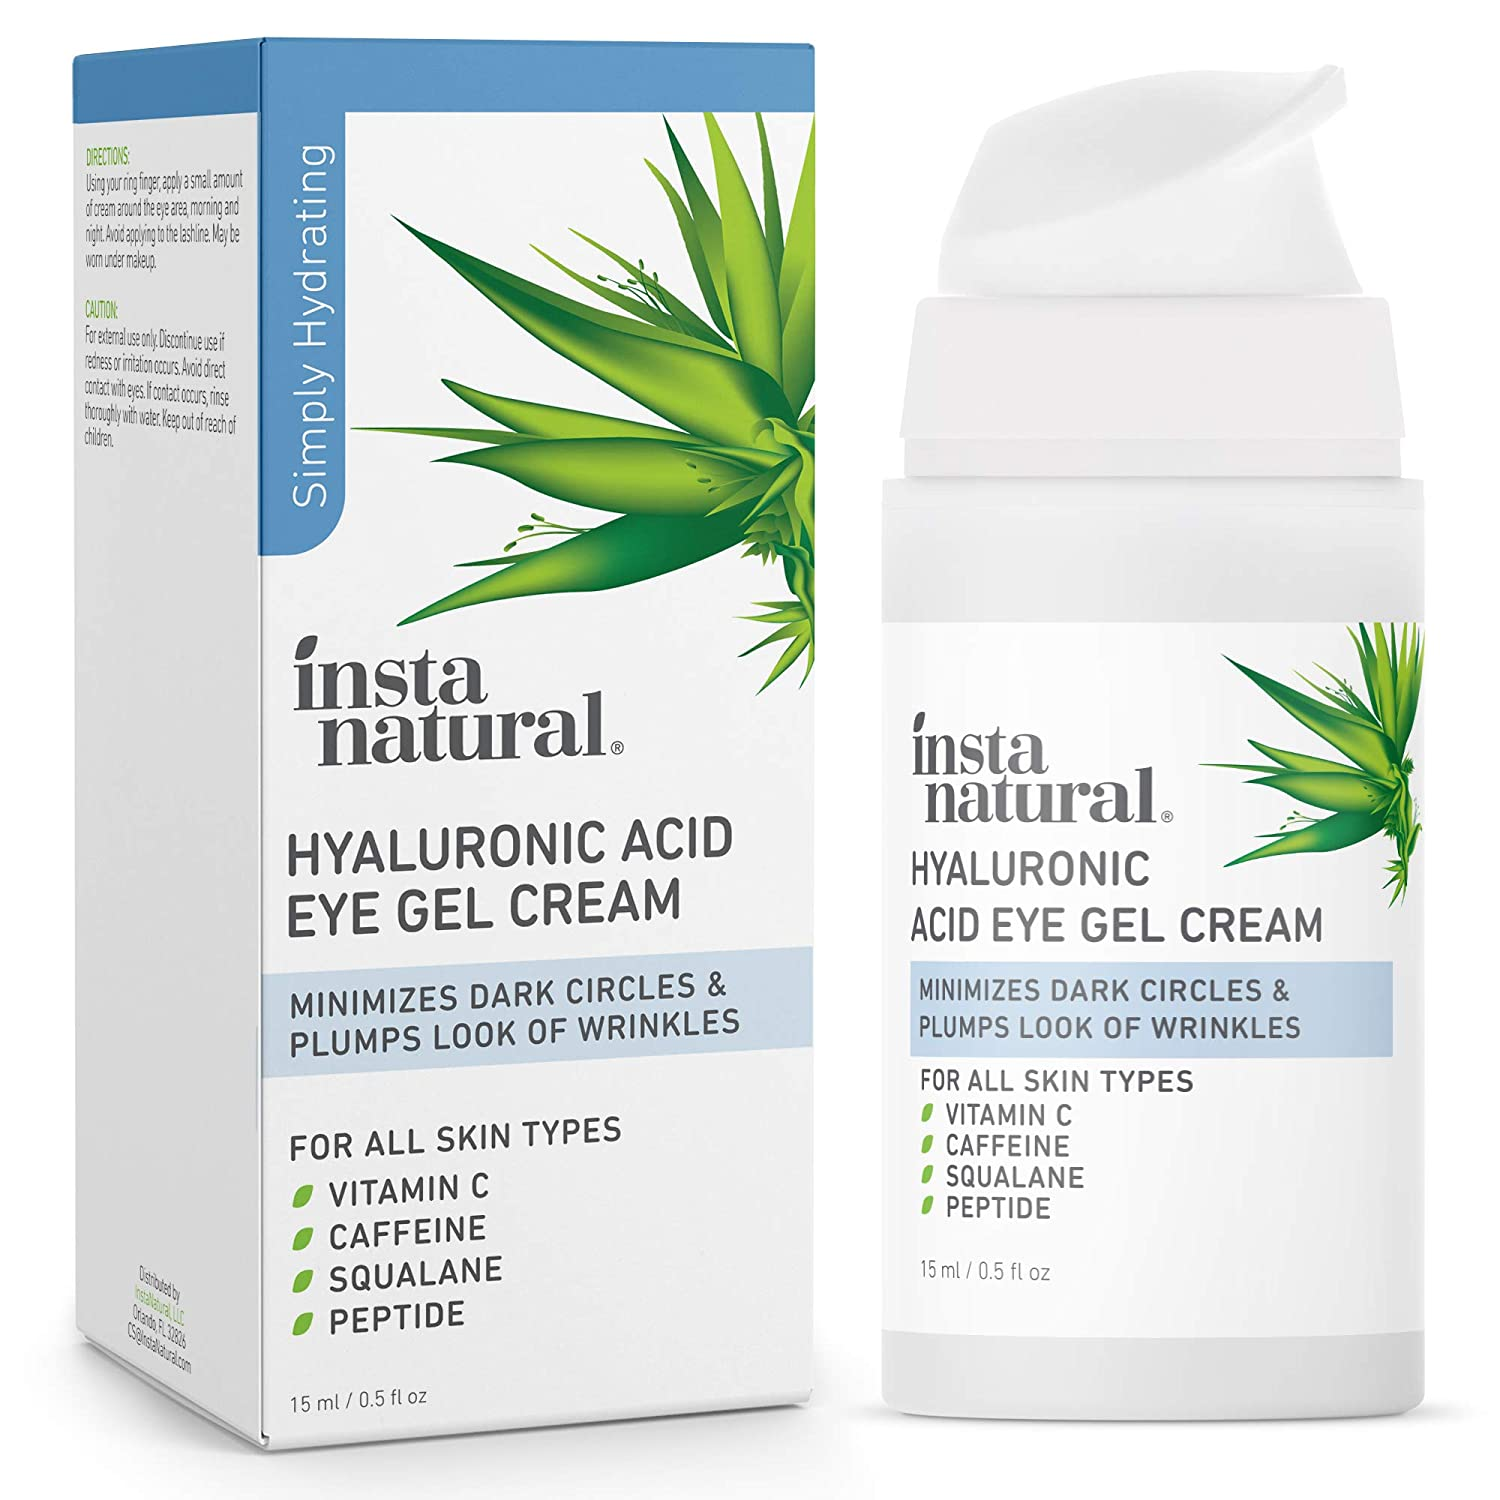 Hyaluronic Acid Eye Gel Cream - Hydrating Dark Circle, Eye Bags Remover & Puffy Eyes Moisturizer - Crows Feet, Lines & Wrinkles, Lifting & Firming Brightening Treatment - Vitamin C & Caffeine - 0.5 oz